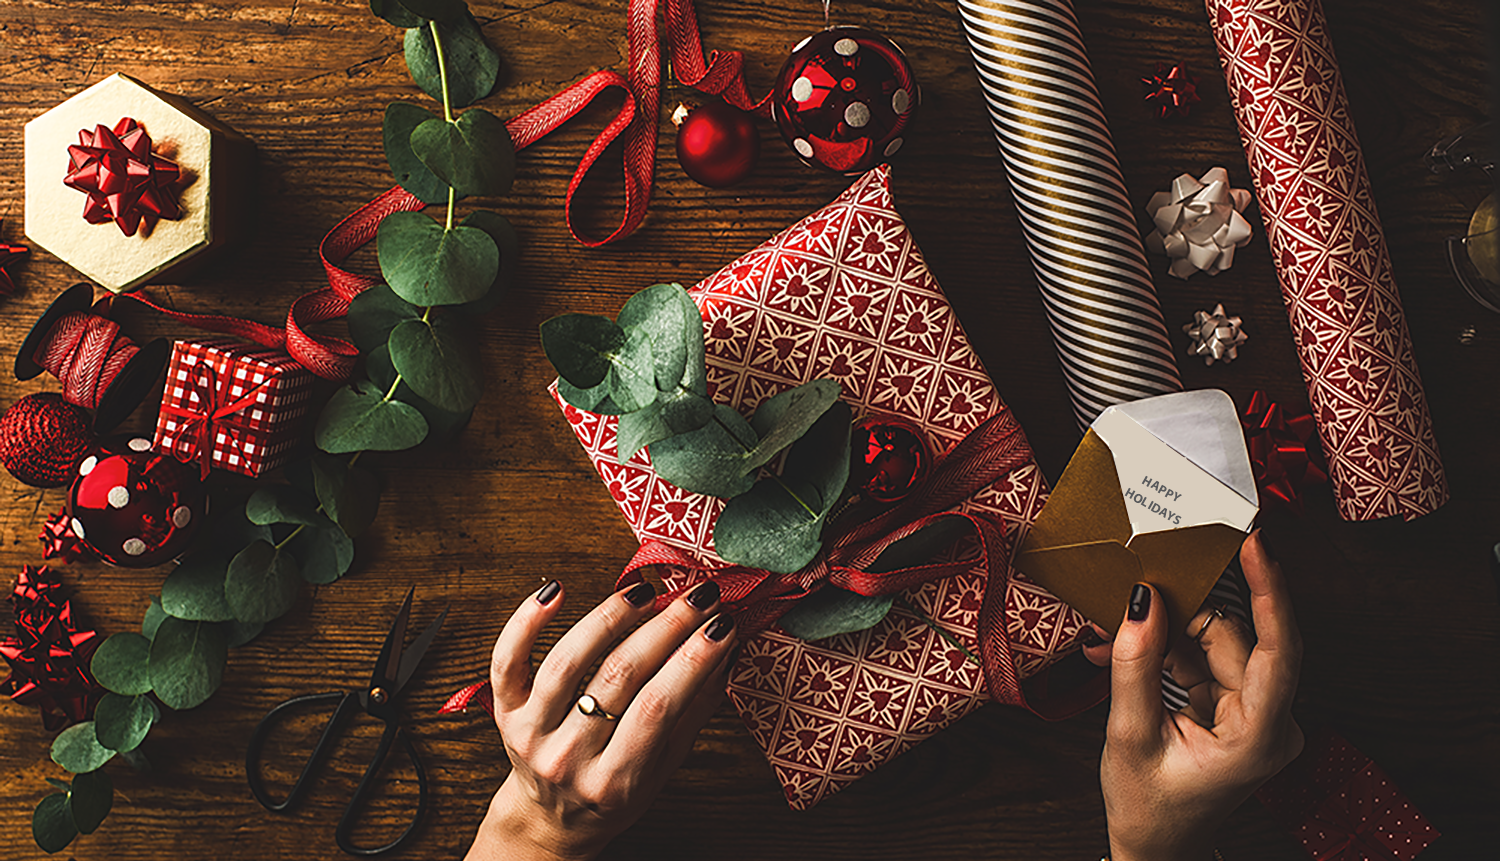 Why a Personalized Photo Book is the Best Holiday Gift